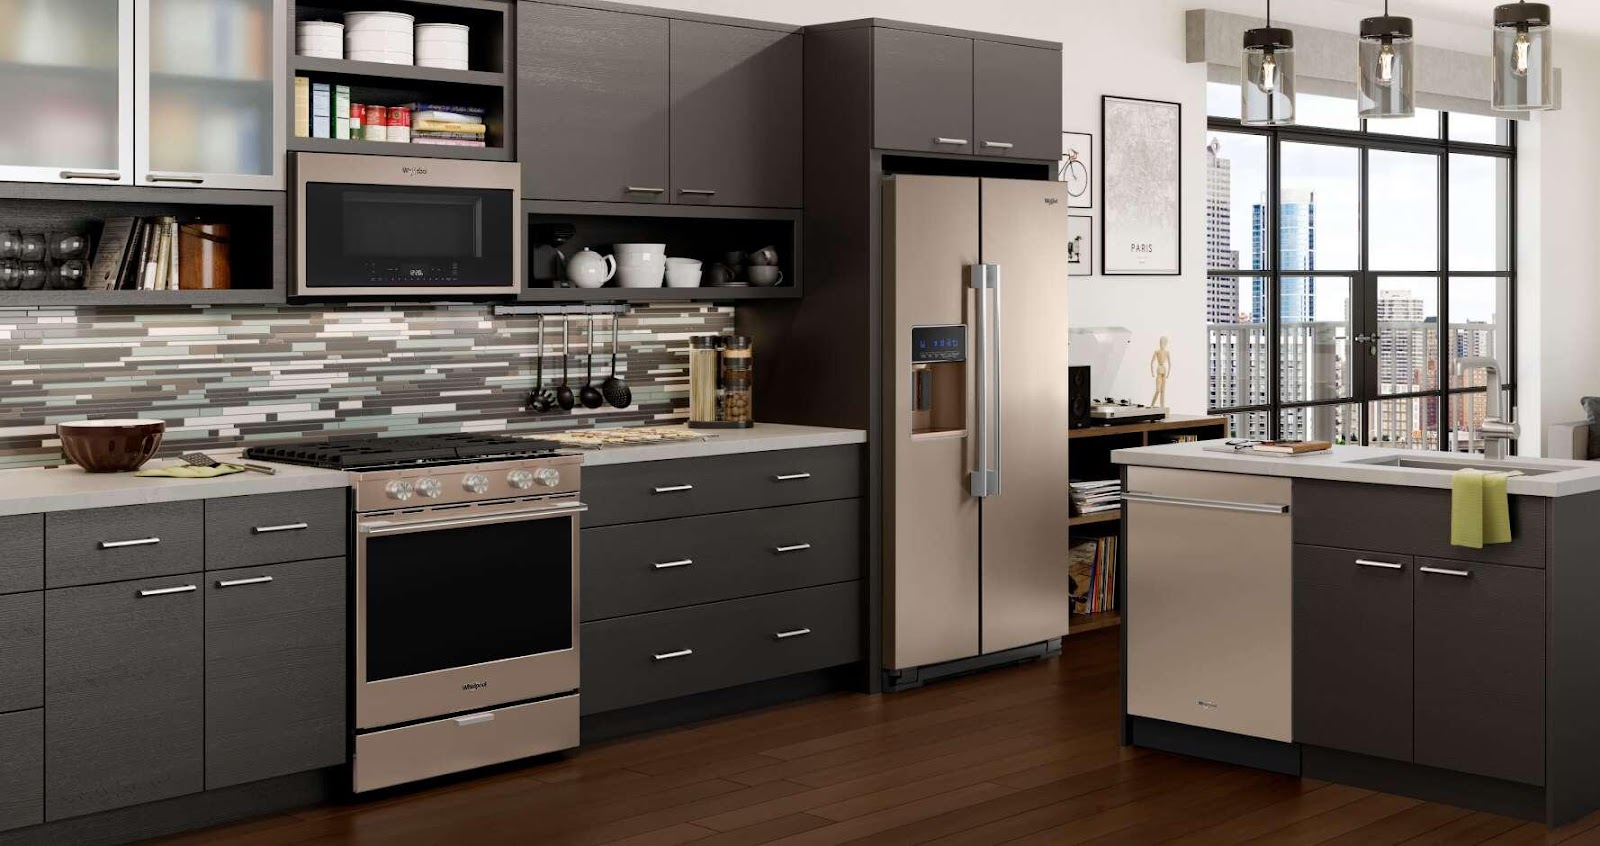 Most Reliable Refrigerator >> The Top 5 Appliance Brands Of 2019 Happy S Appliances